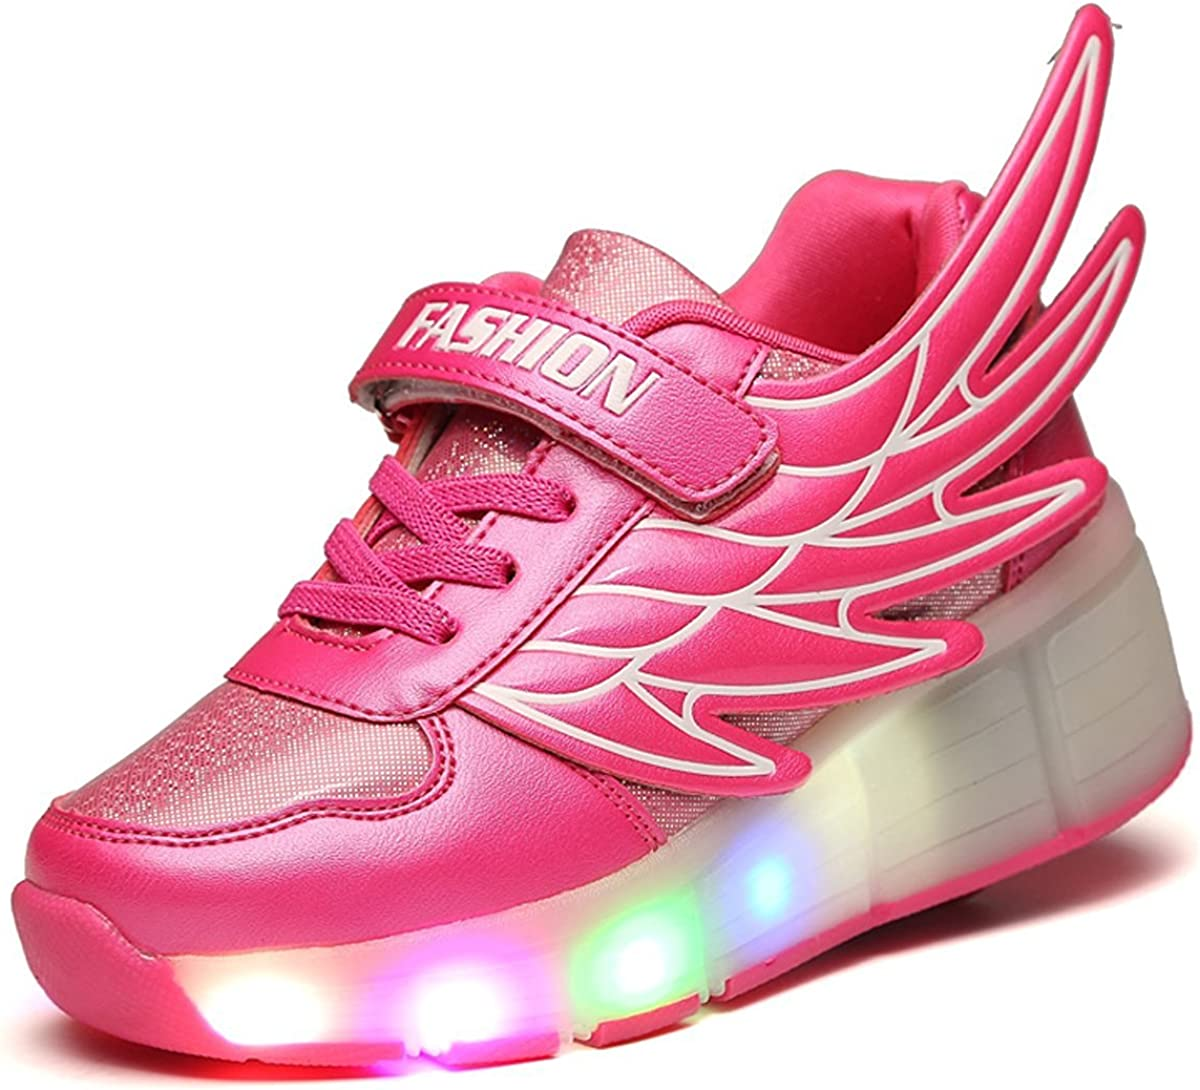 pit4tk LED Light Up Single//Double Wheel Roller Skate Shoes Fashion Sports Flashing Sneaker Boys Girls Kid